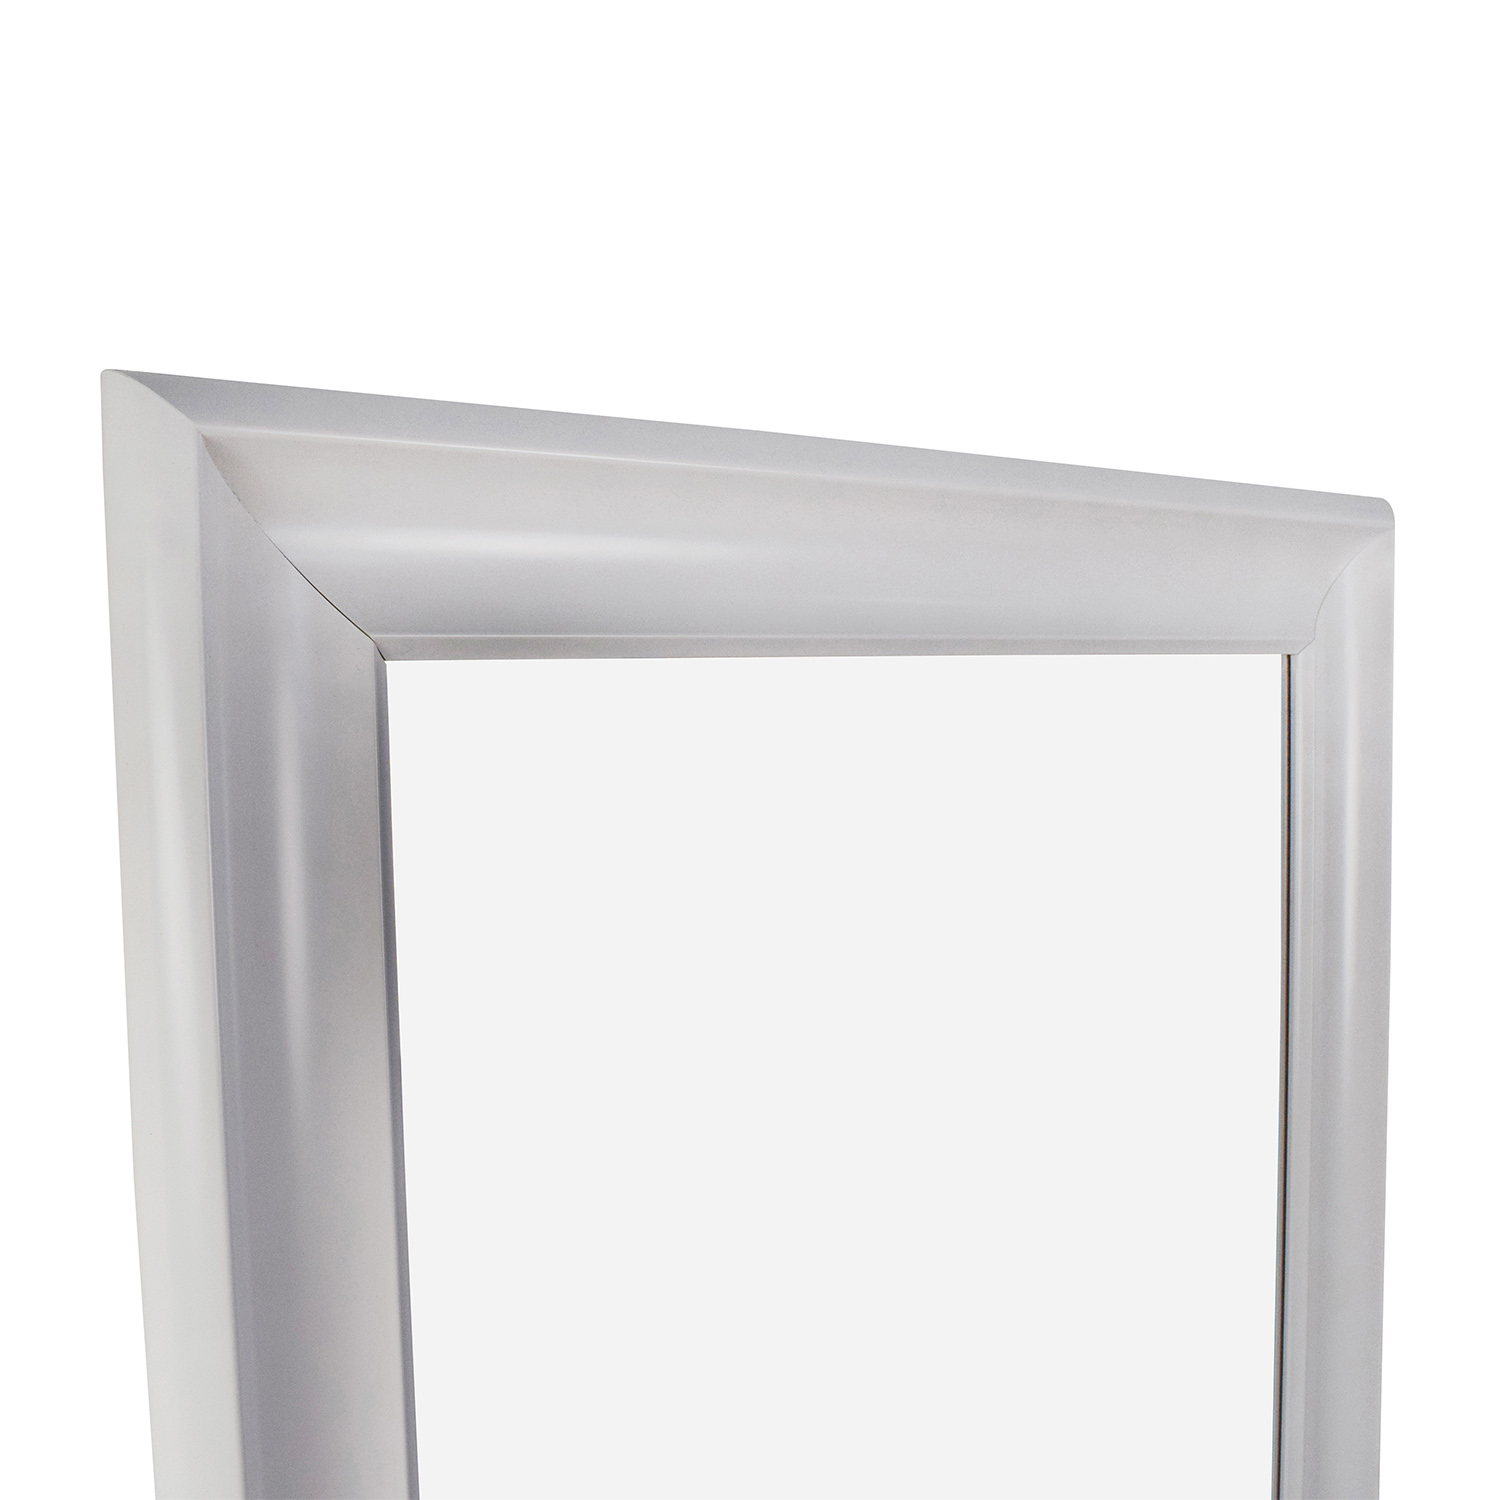 Sandberg Furniture Contemporary Full Length Mirror / Mirrors